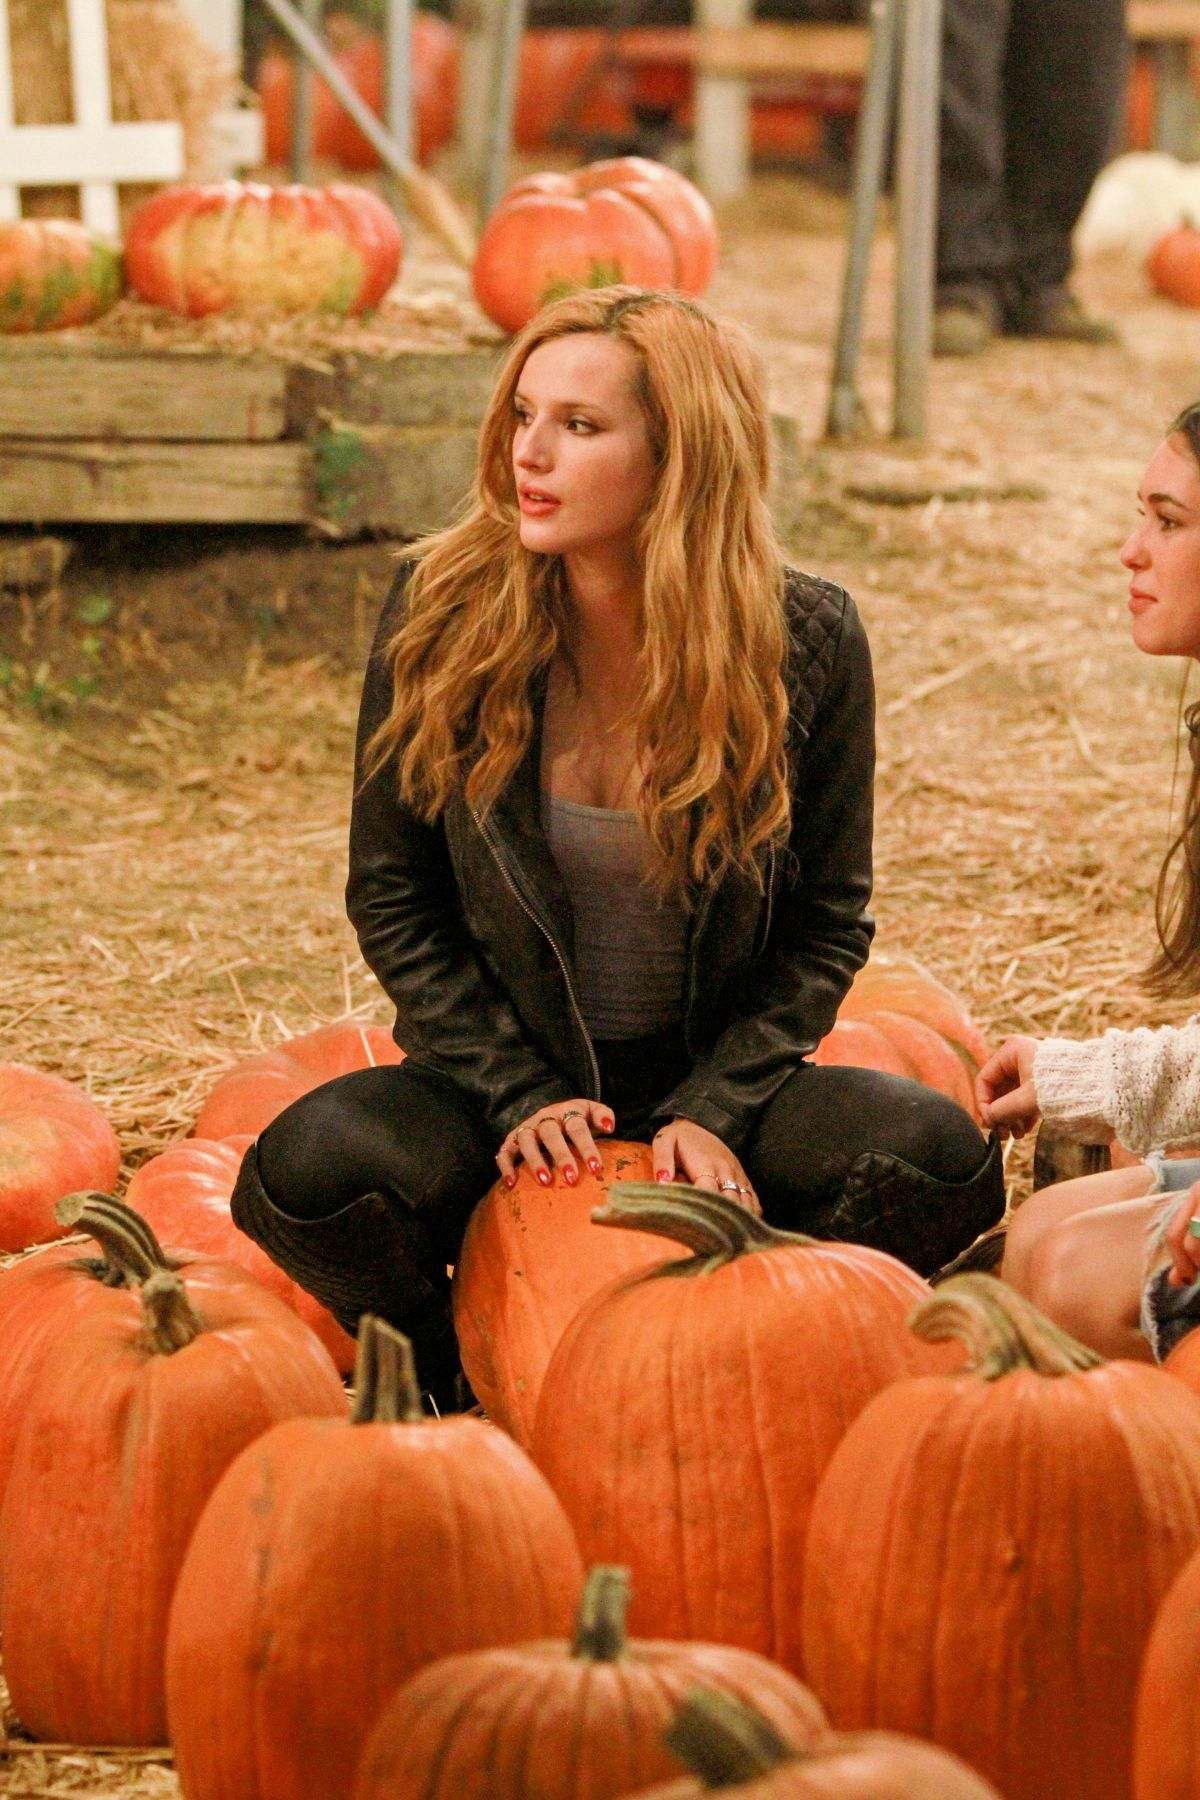 BELLA THORNE at Pumpkin Patch in Los Angeles